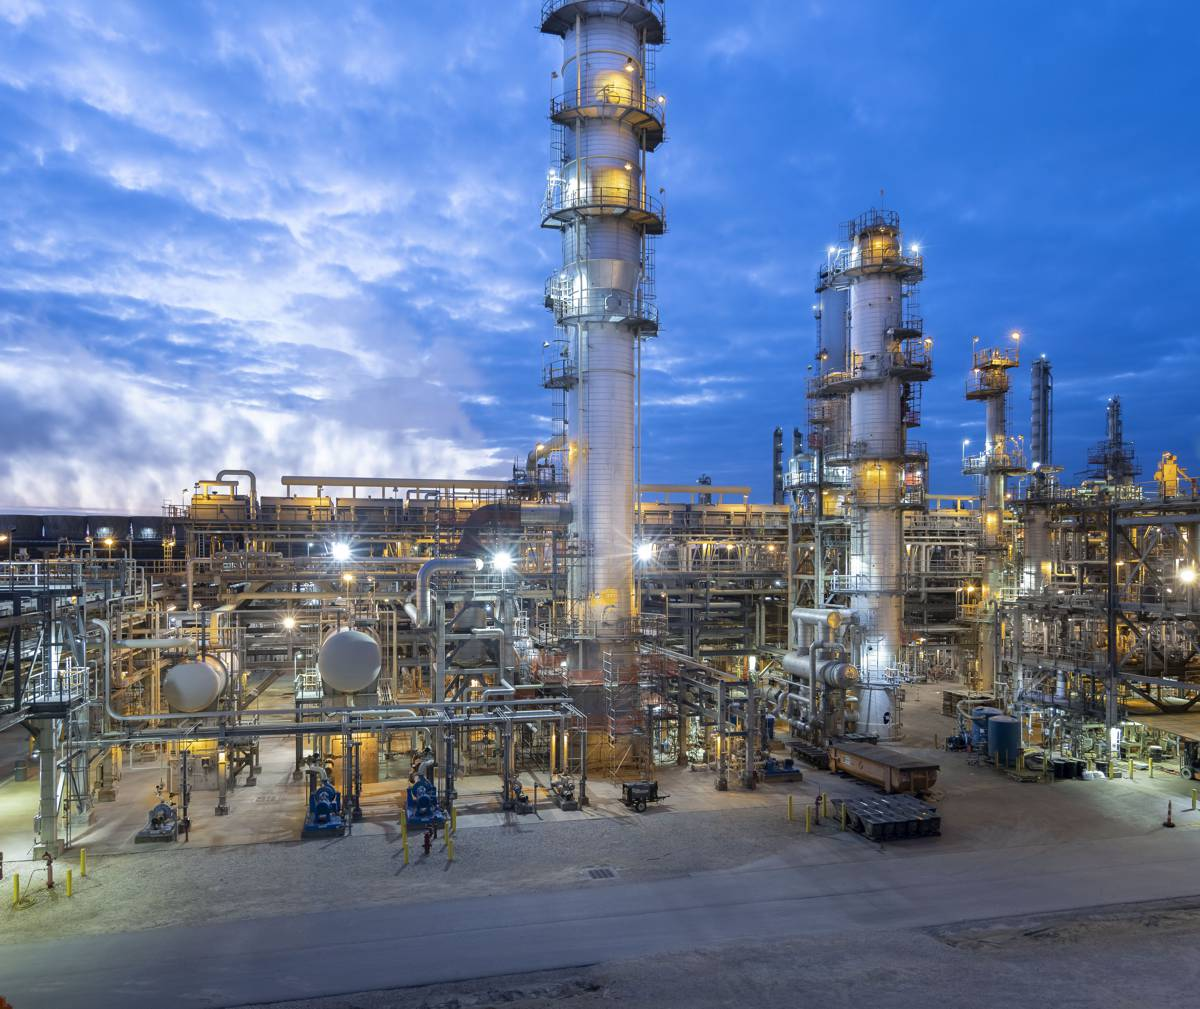 SandB wins contract for World-scale 1-Hexene Unit for Chevron Phillips Chemical